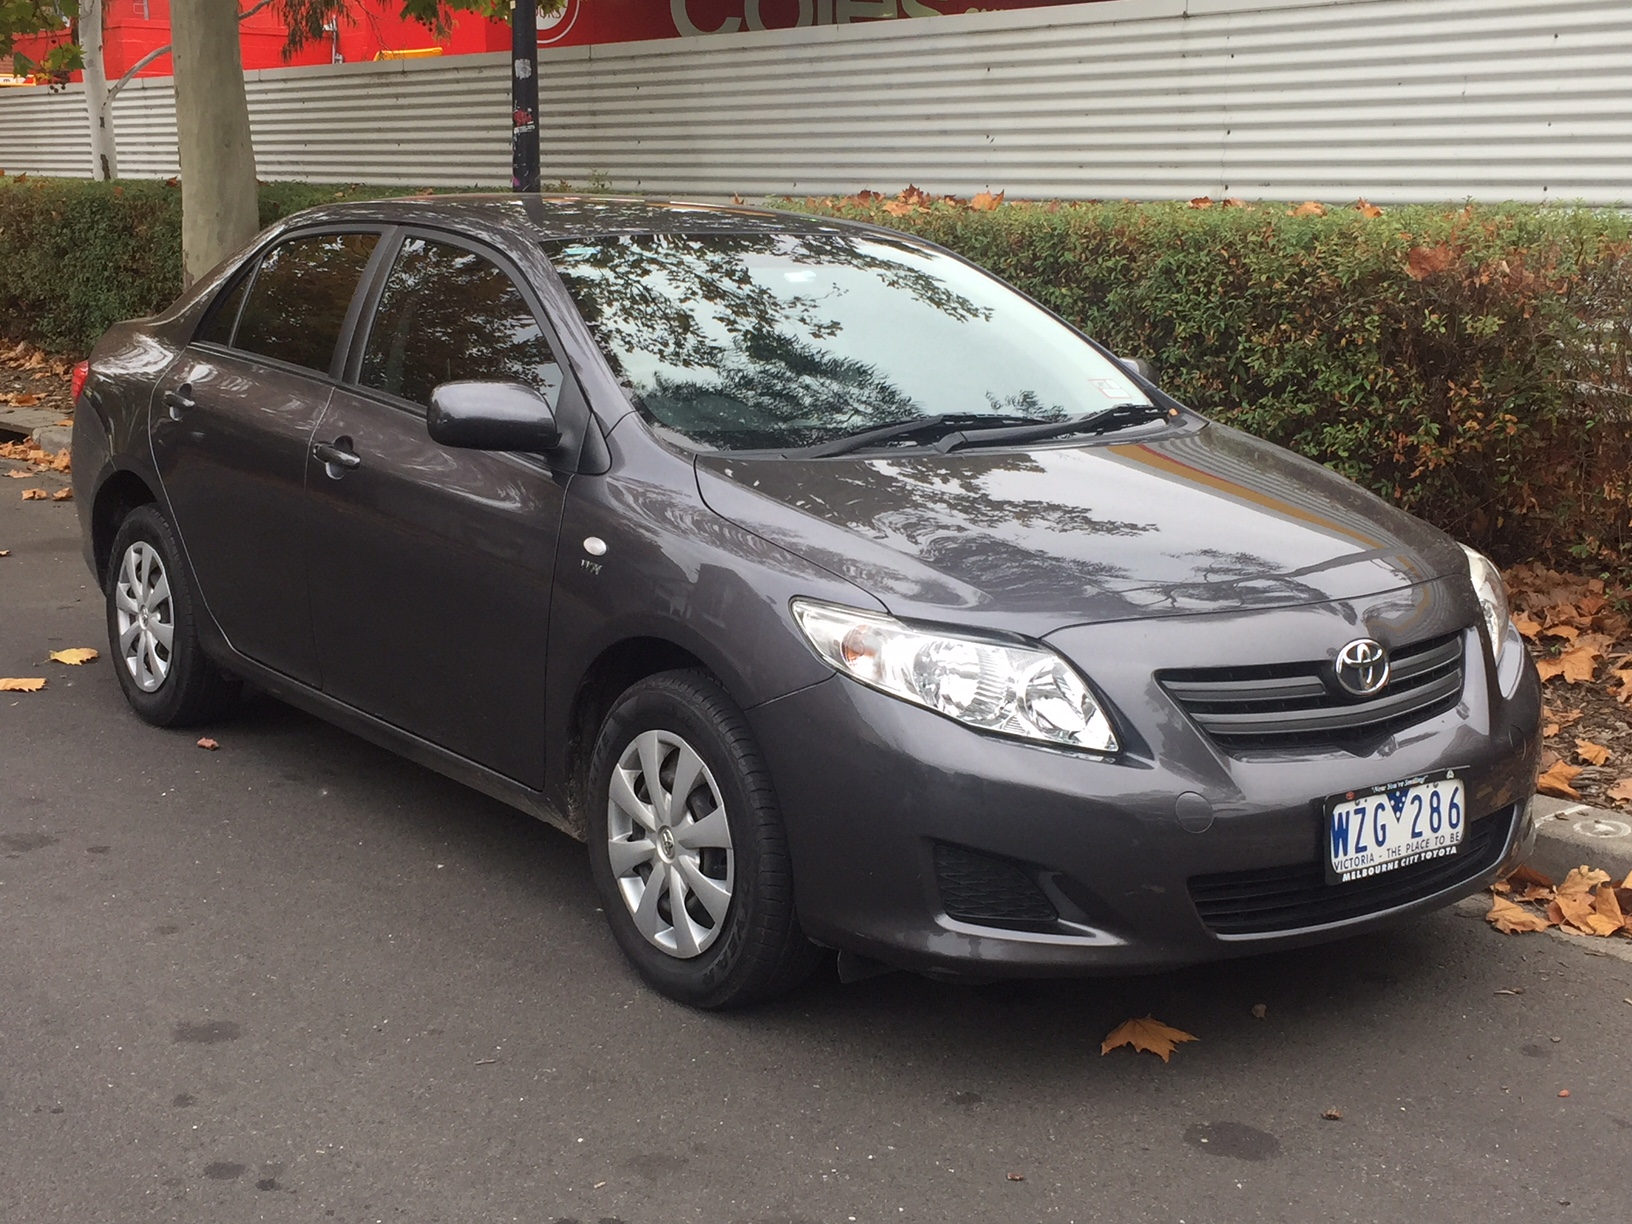 Picture of Enqi's 2008 Toyota Corolla